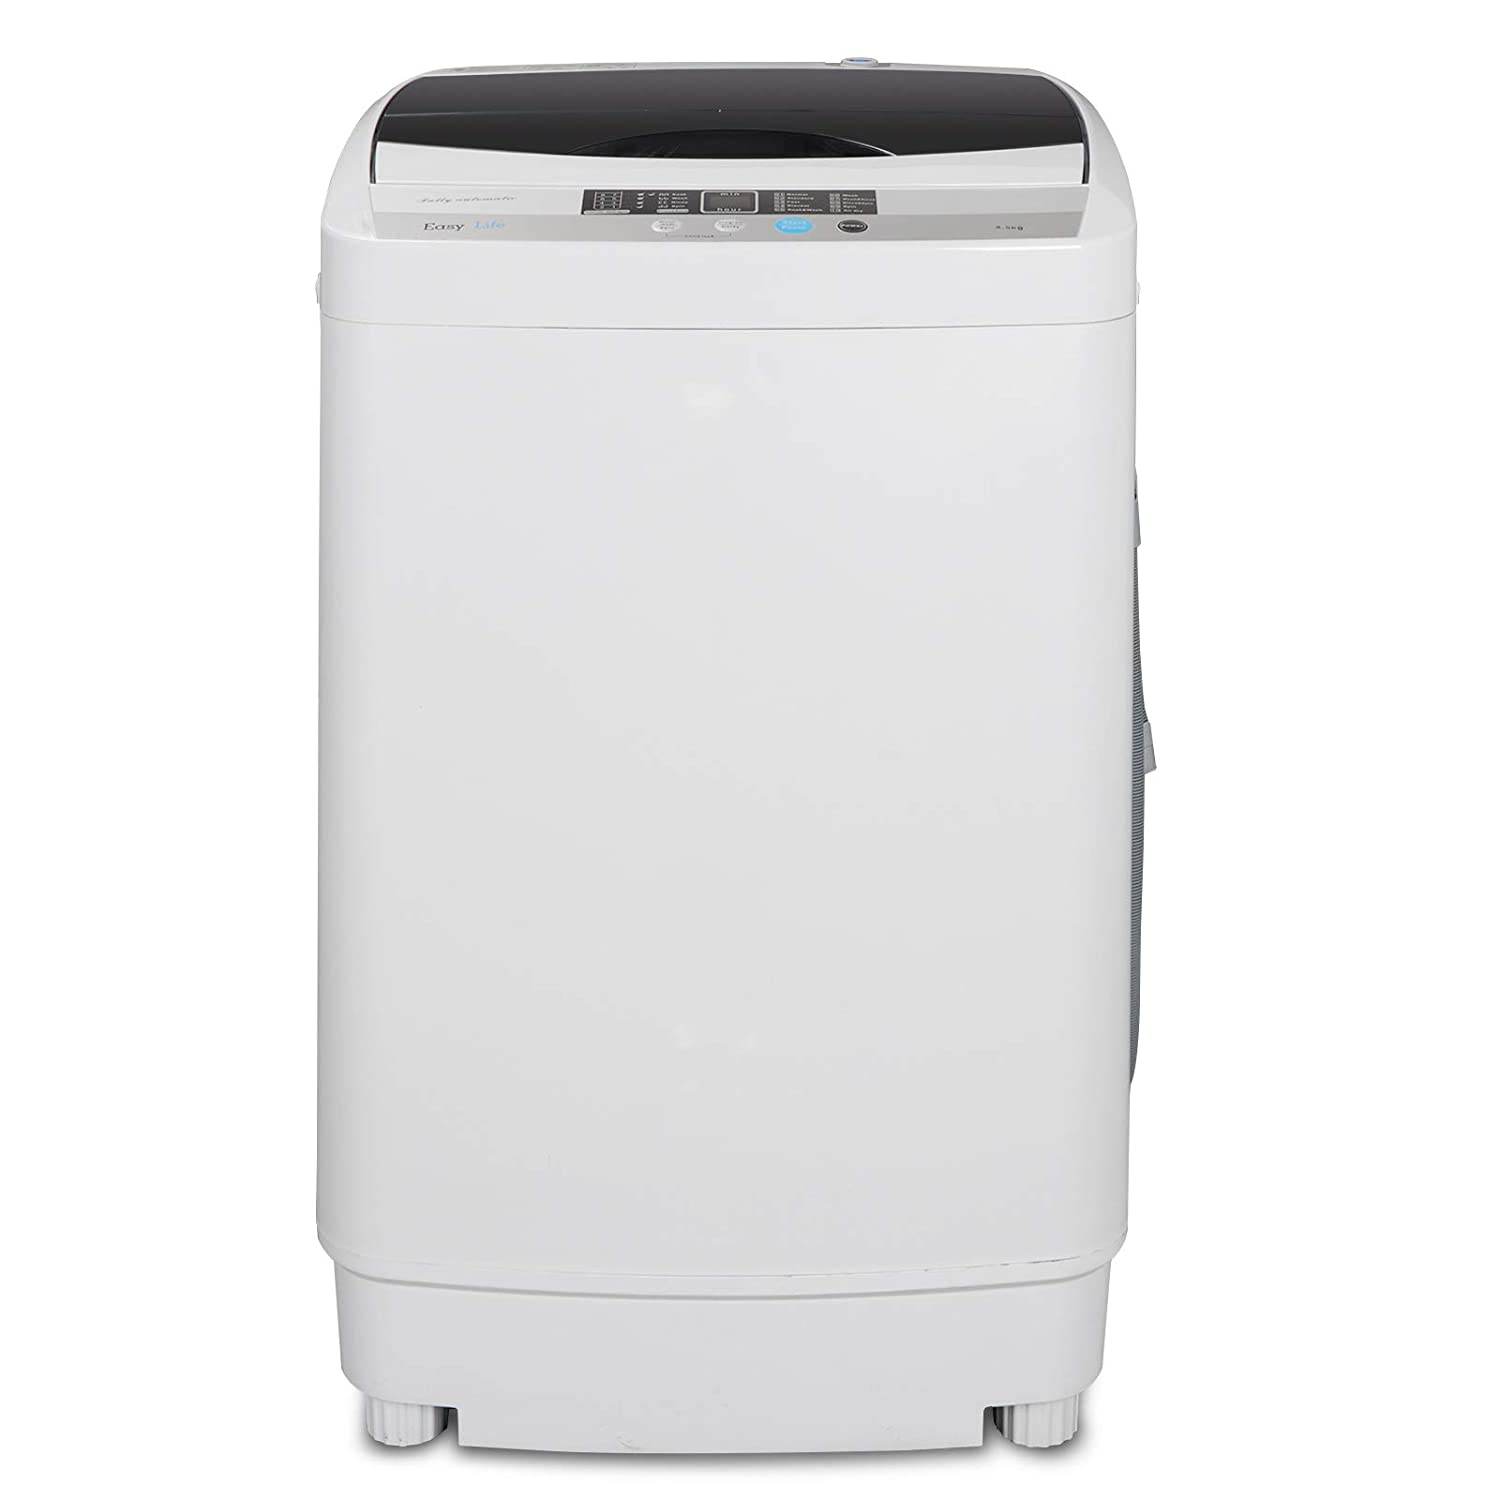 ZENY Portable Compact Full-Automatic Washing Machine Holds 10lbs Load Mini Laundry Washer Machine for Home (Automatic 8 lbs)